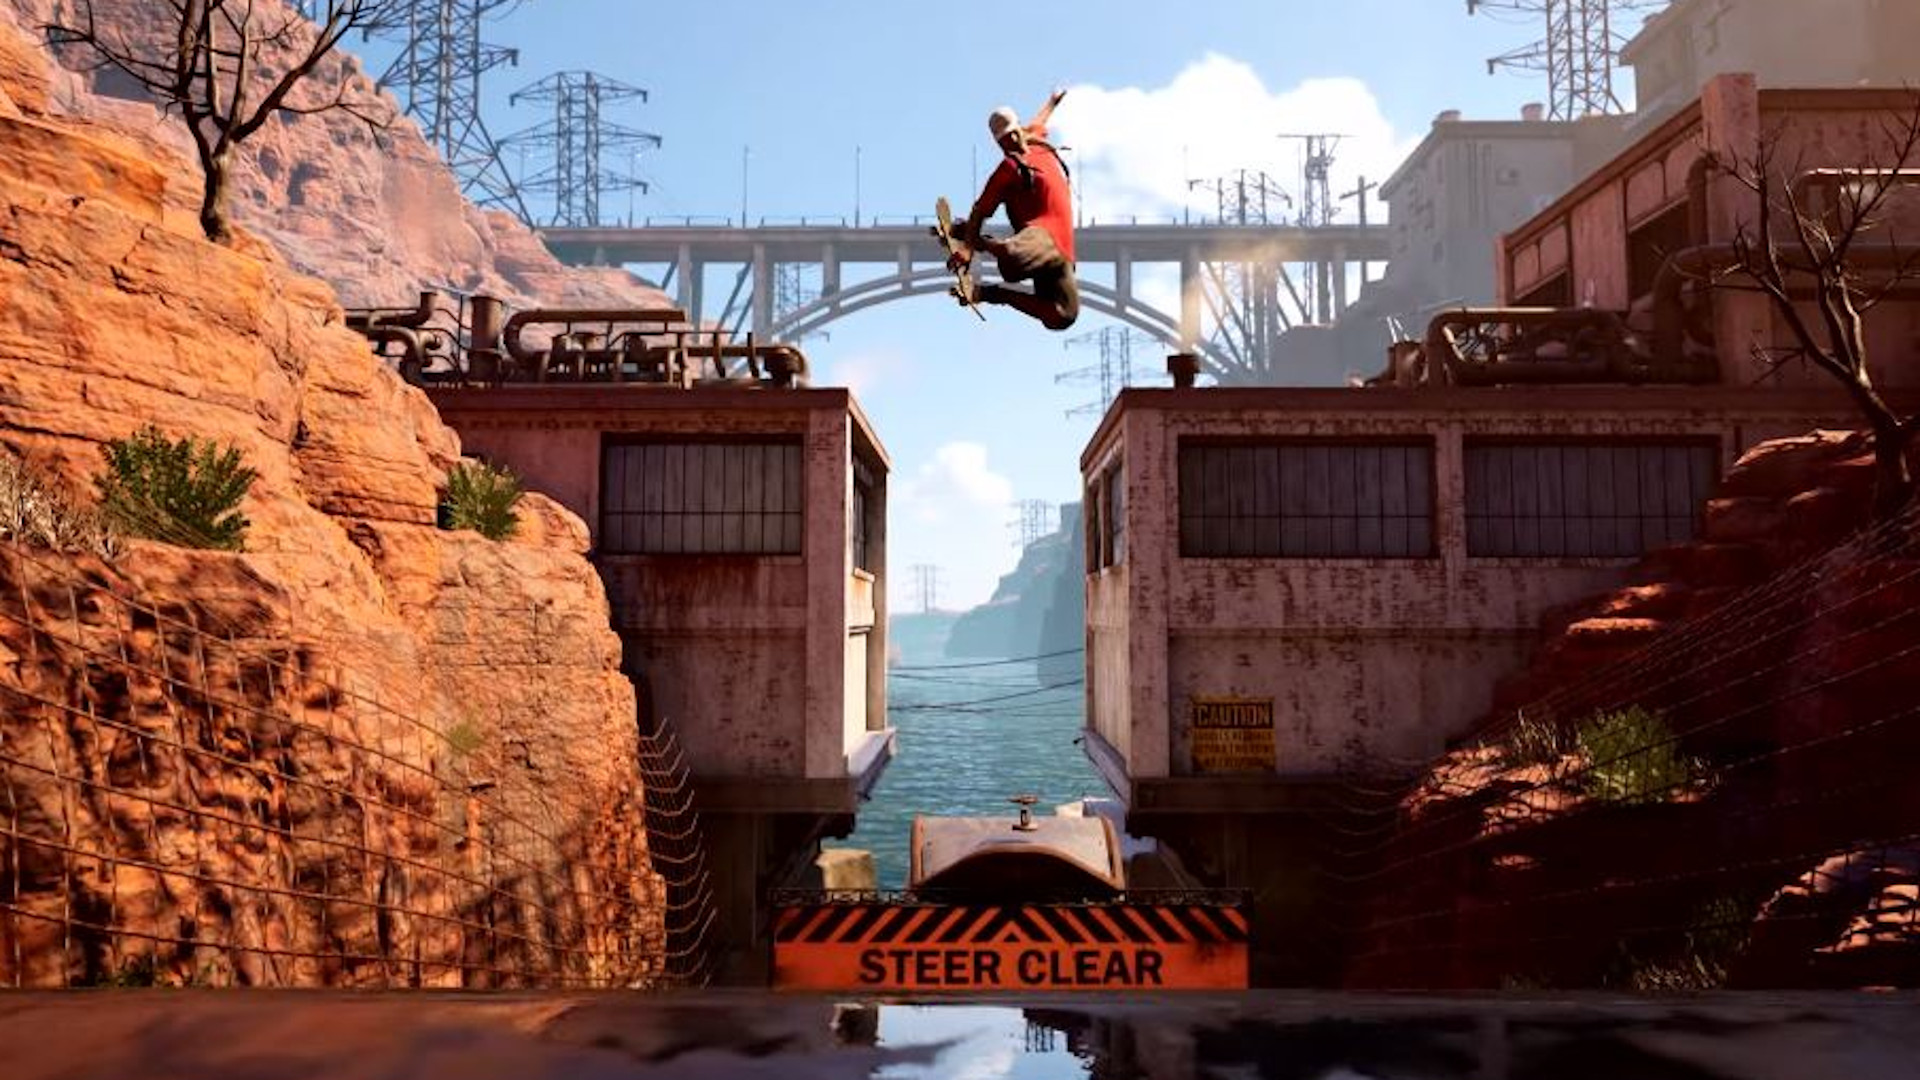 Tony Hawk's Pro Skater 1 and 2 will have online multiplayer